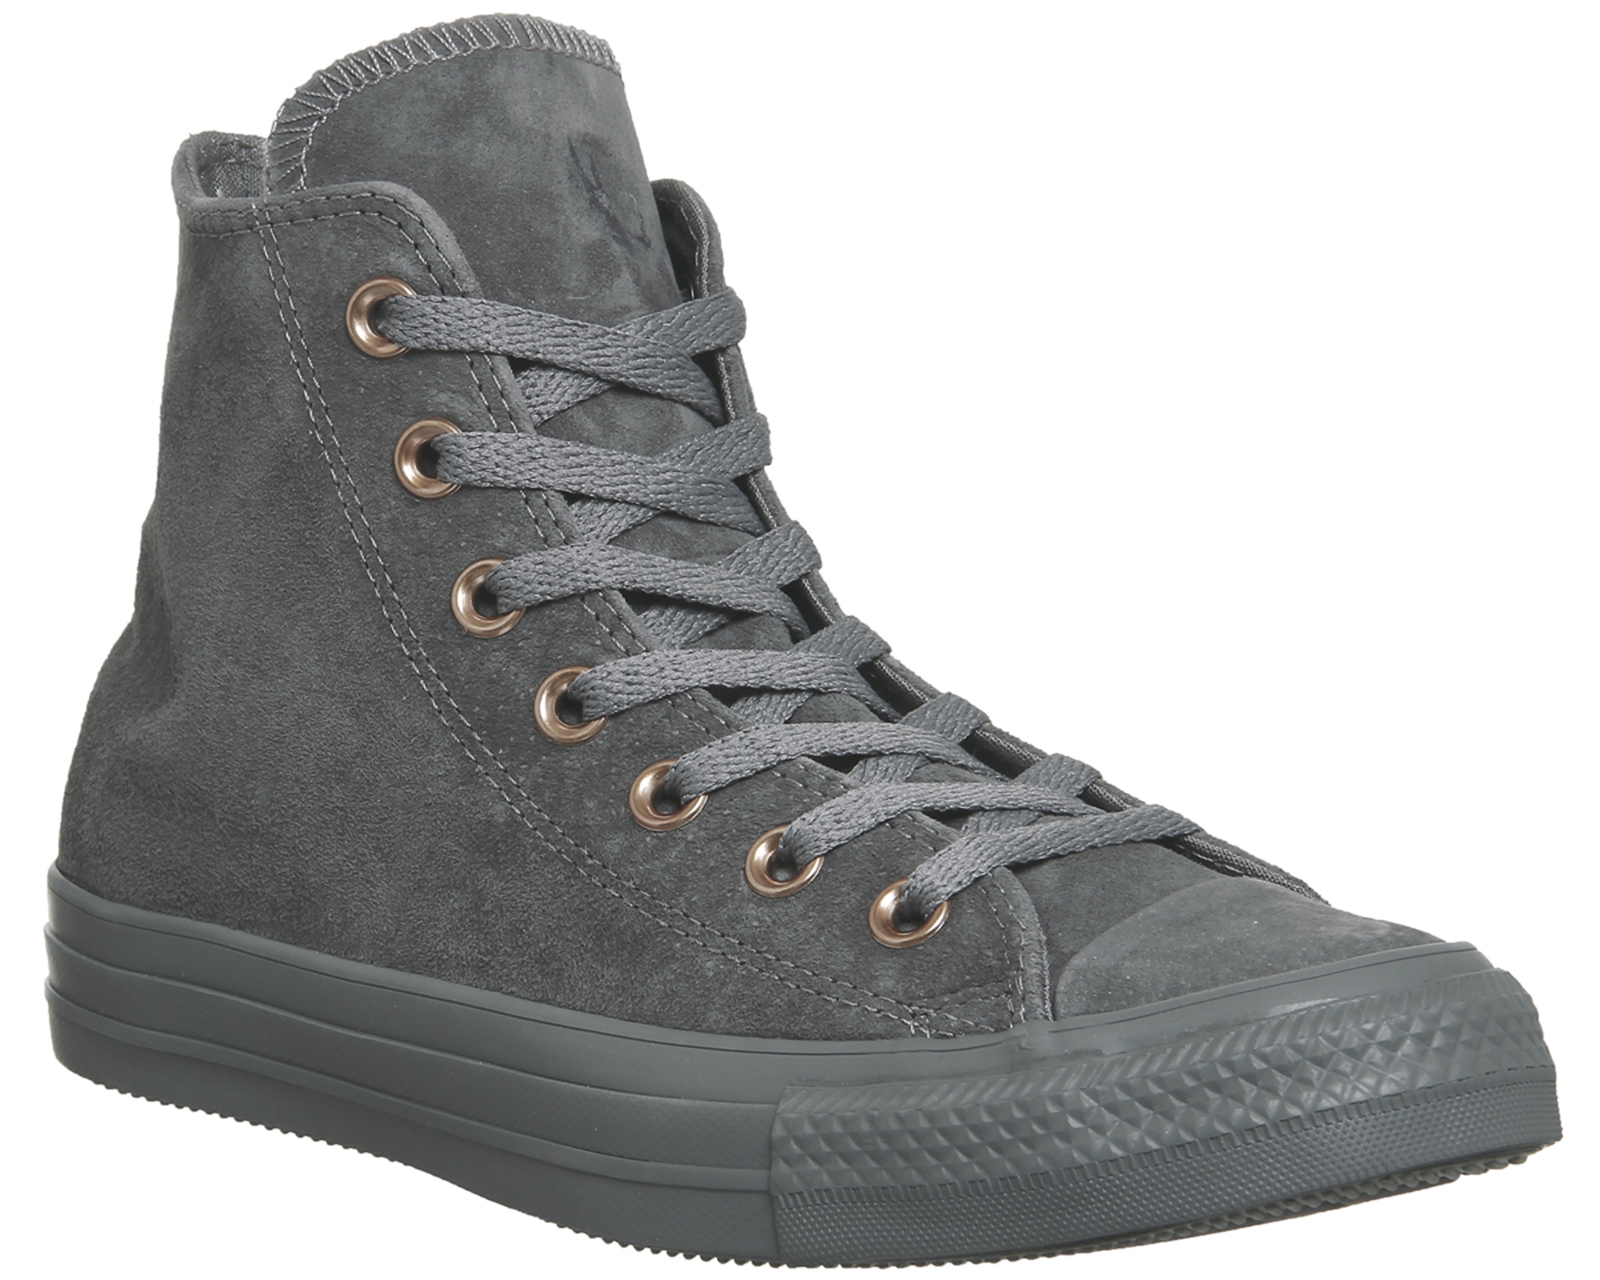 Sentinel Womens Converse All Star Hi Leather MASON GREY STUD EXCLUSIVE  Trainers Shoes 95e53f1c4f6